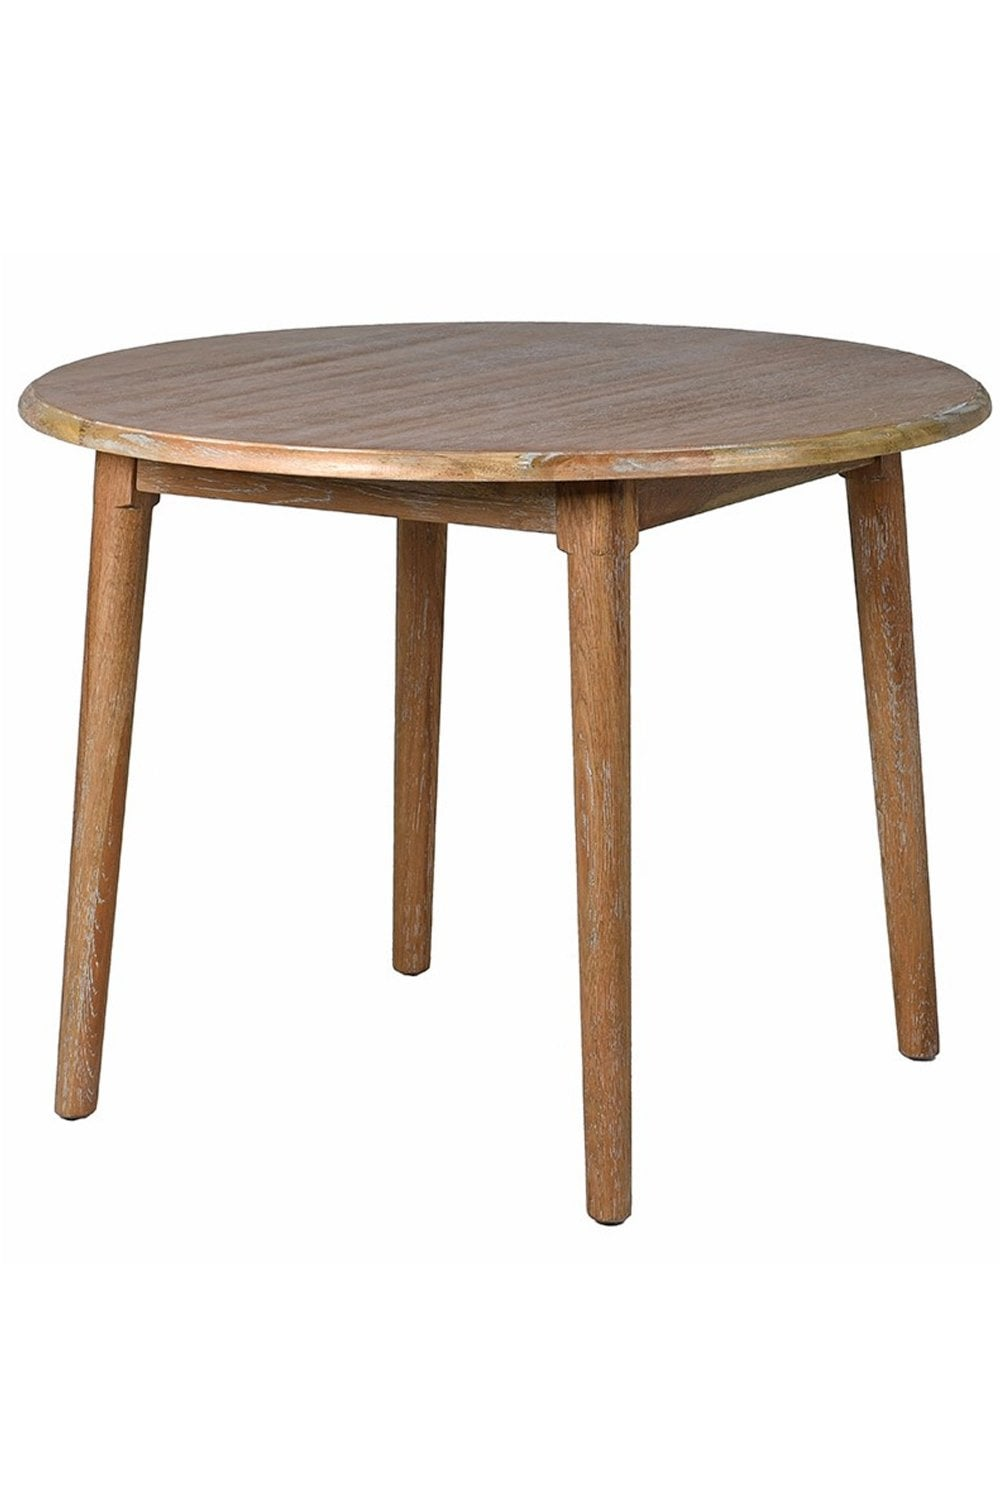 The Home Collection Round Oak Table At Sue Parkinson